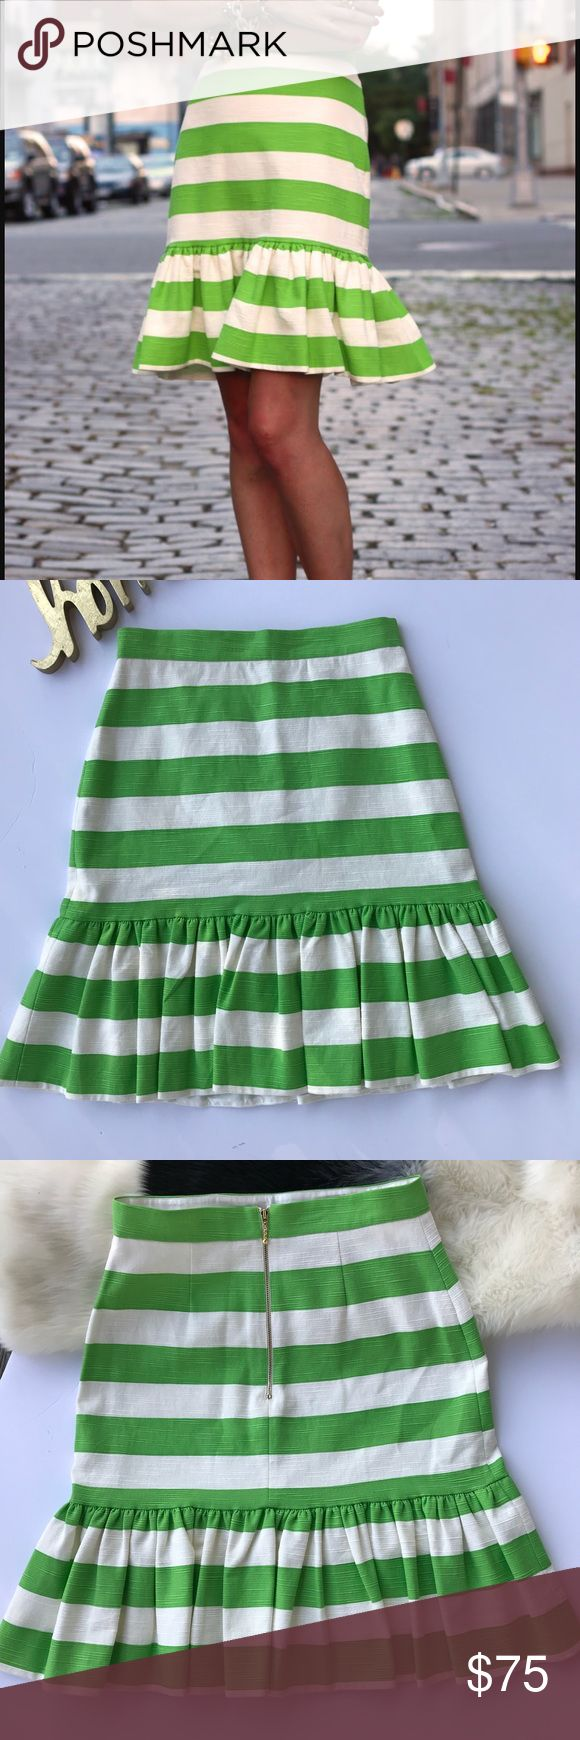 "Kate Spade Senorita Trumpet Flounce Skirt Kate Spade Green & White Striped Skirt. Trumpet Silhouette. Knee Length. Flounce Hemline. Exposed Gold Back Zipper. Fully Lined. Materials: Body 100% Cotton. Lining: 100% Polyester. Approximate Measurements: Length 23"" Inches.  Waist: 28"" Inches. Hips: 35"" Inches. Excellent Condition. kate spade Skirts"